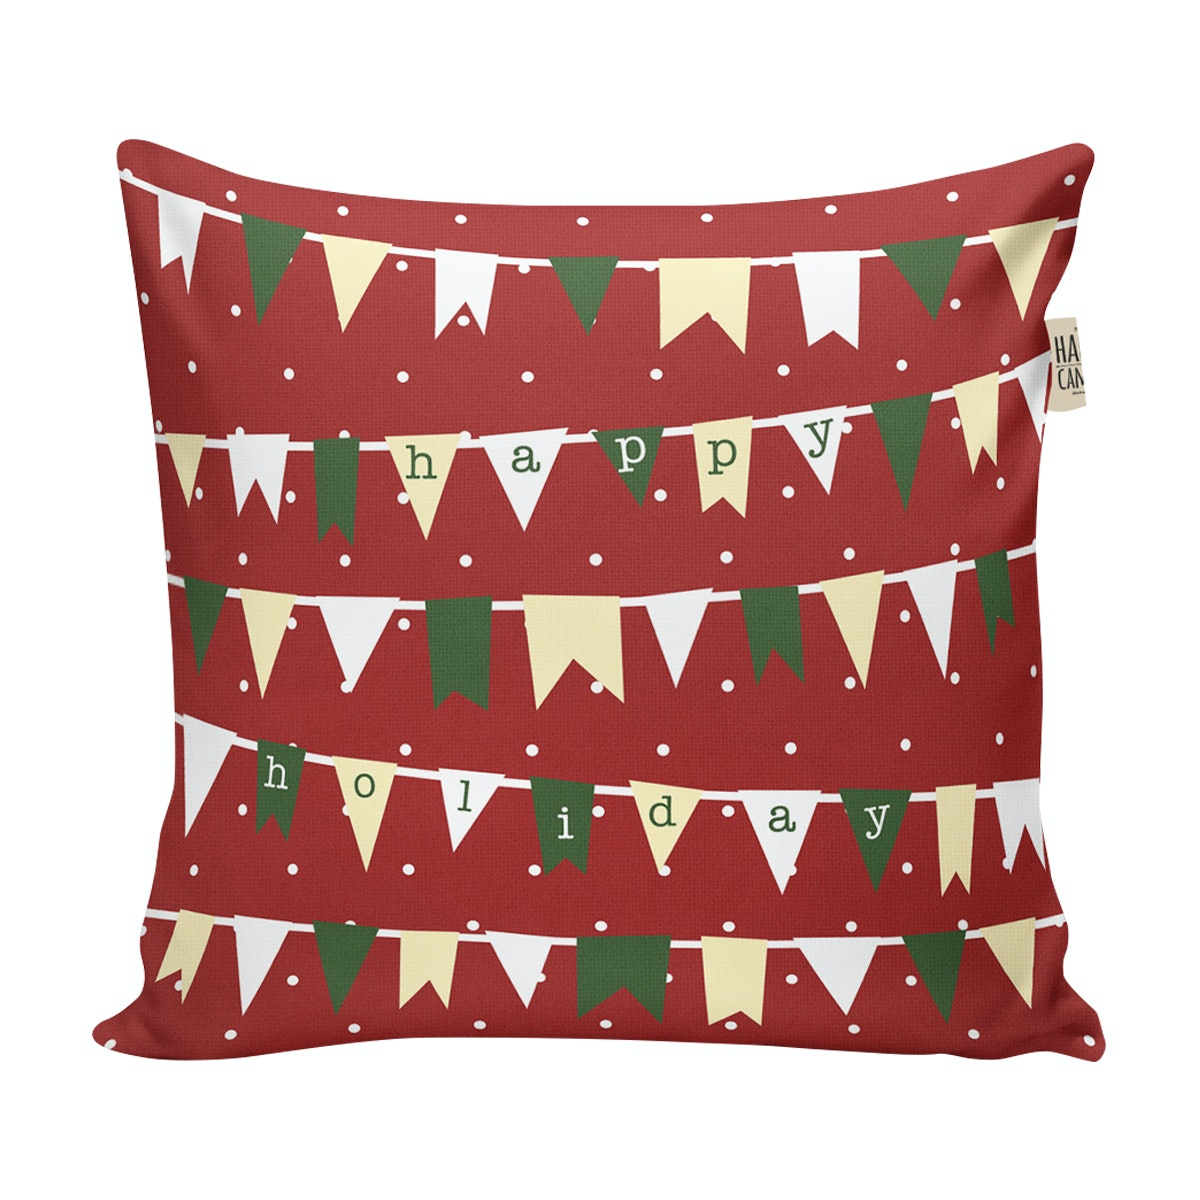 The Happy Camper Christmas Holiday - cushion cover